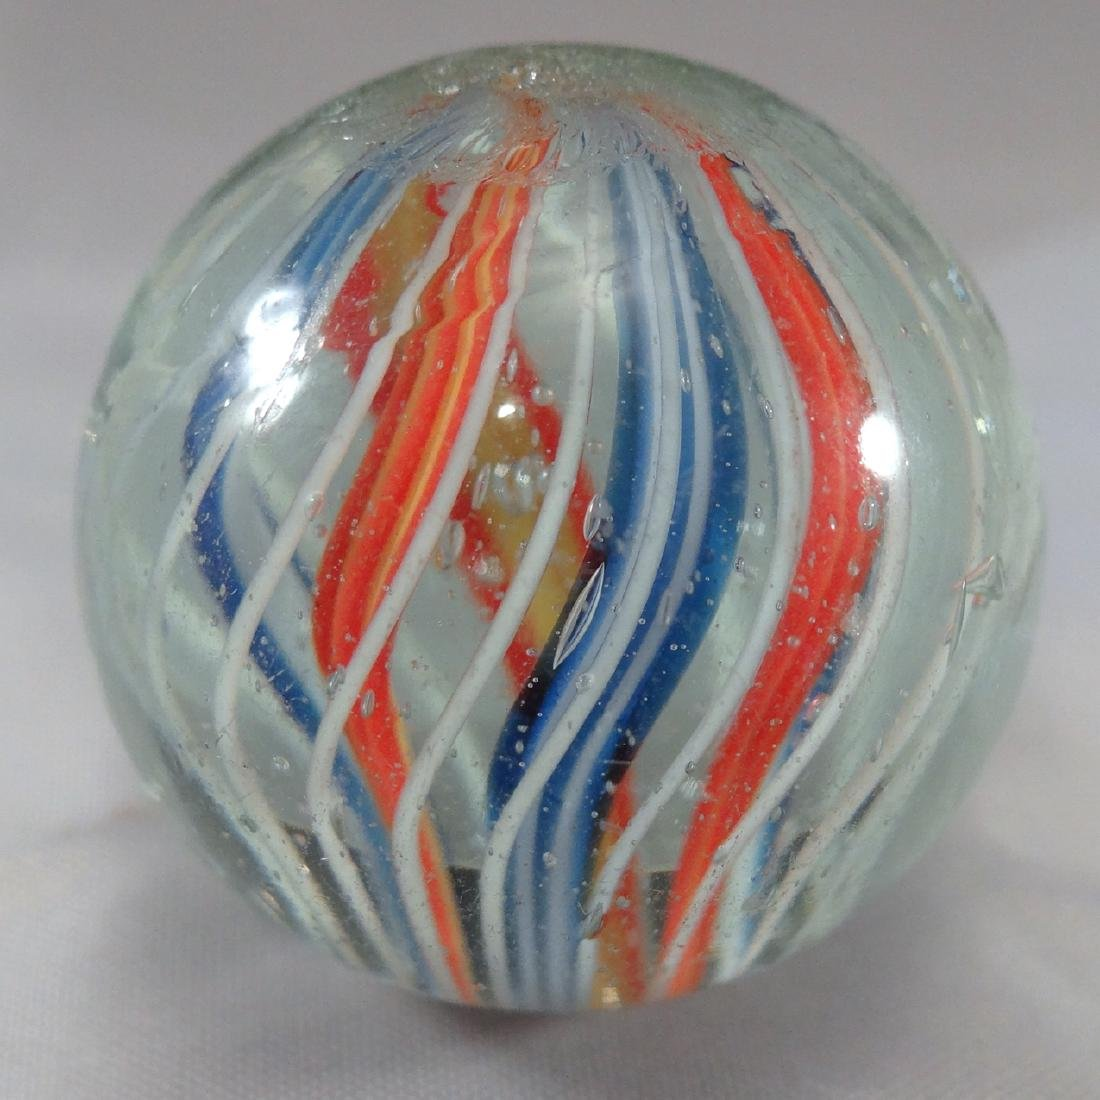 "Lot 56. SWIRL, Divided Core. 1-3/16"". 9.7 - 2"